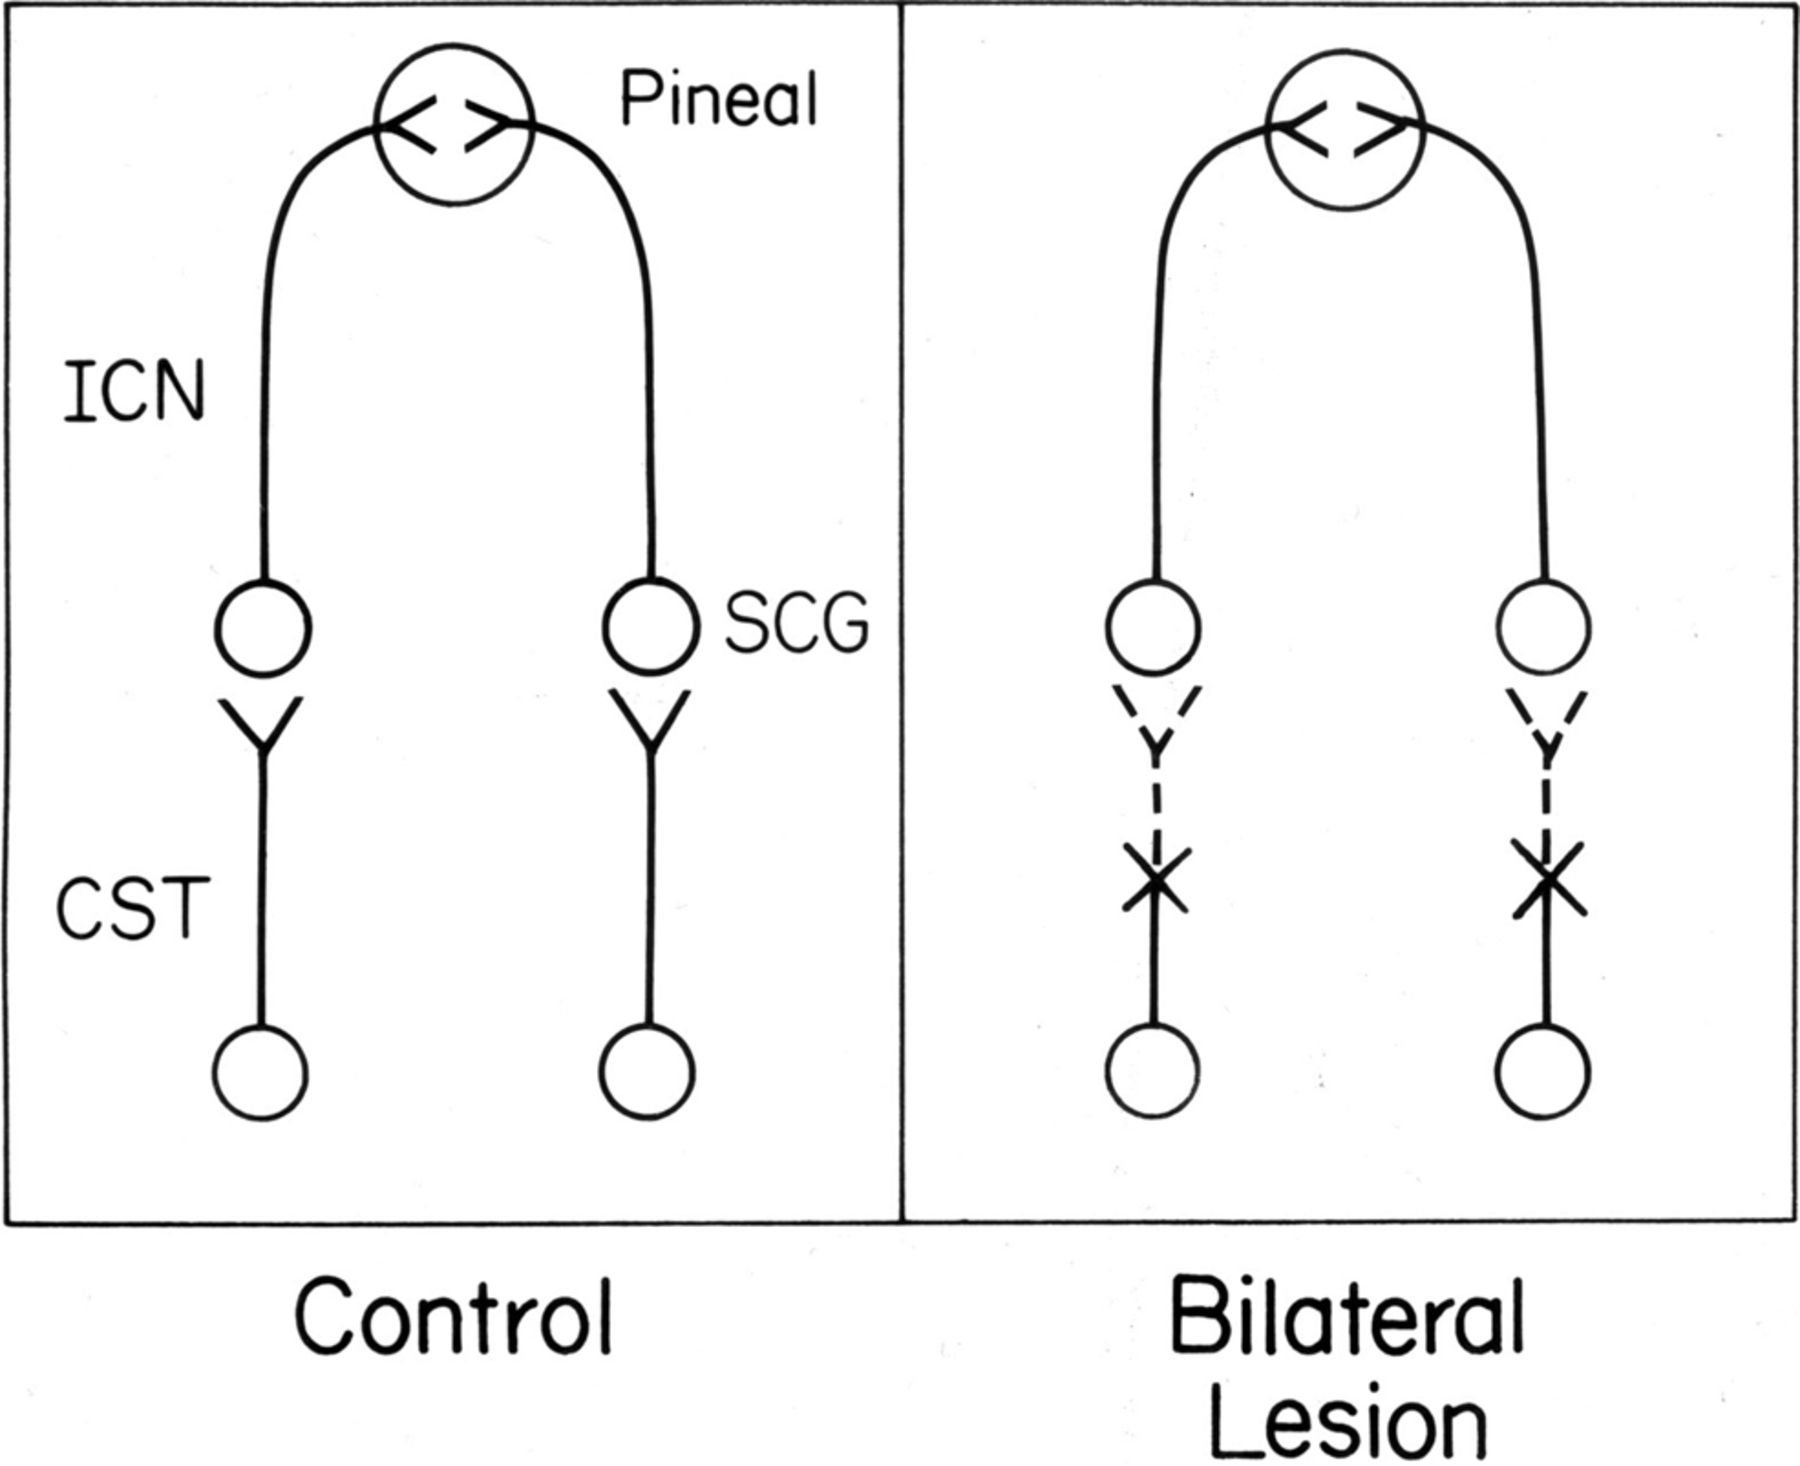 Limited Recovery Of Pineal Function After Regeneration Of